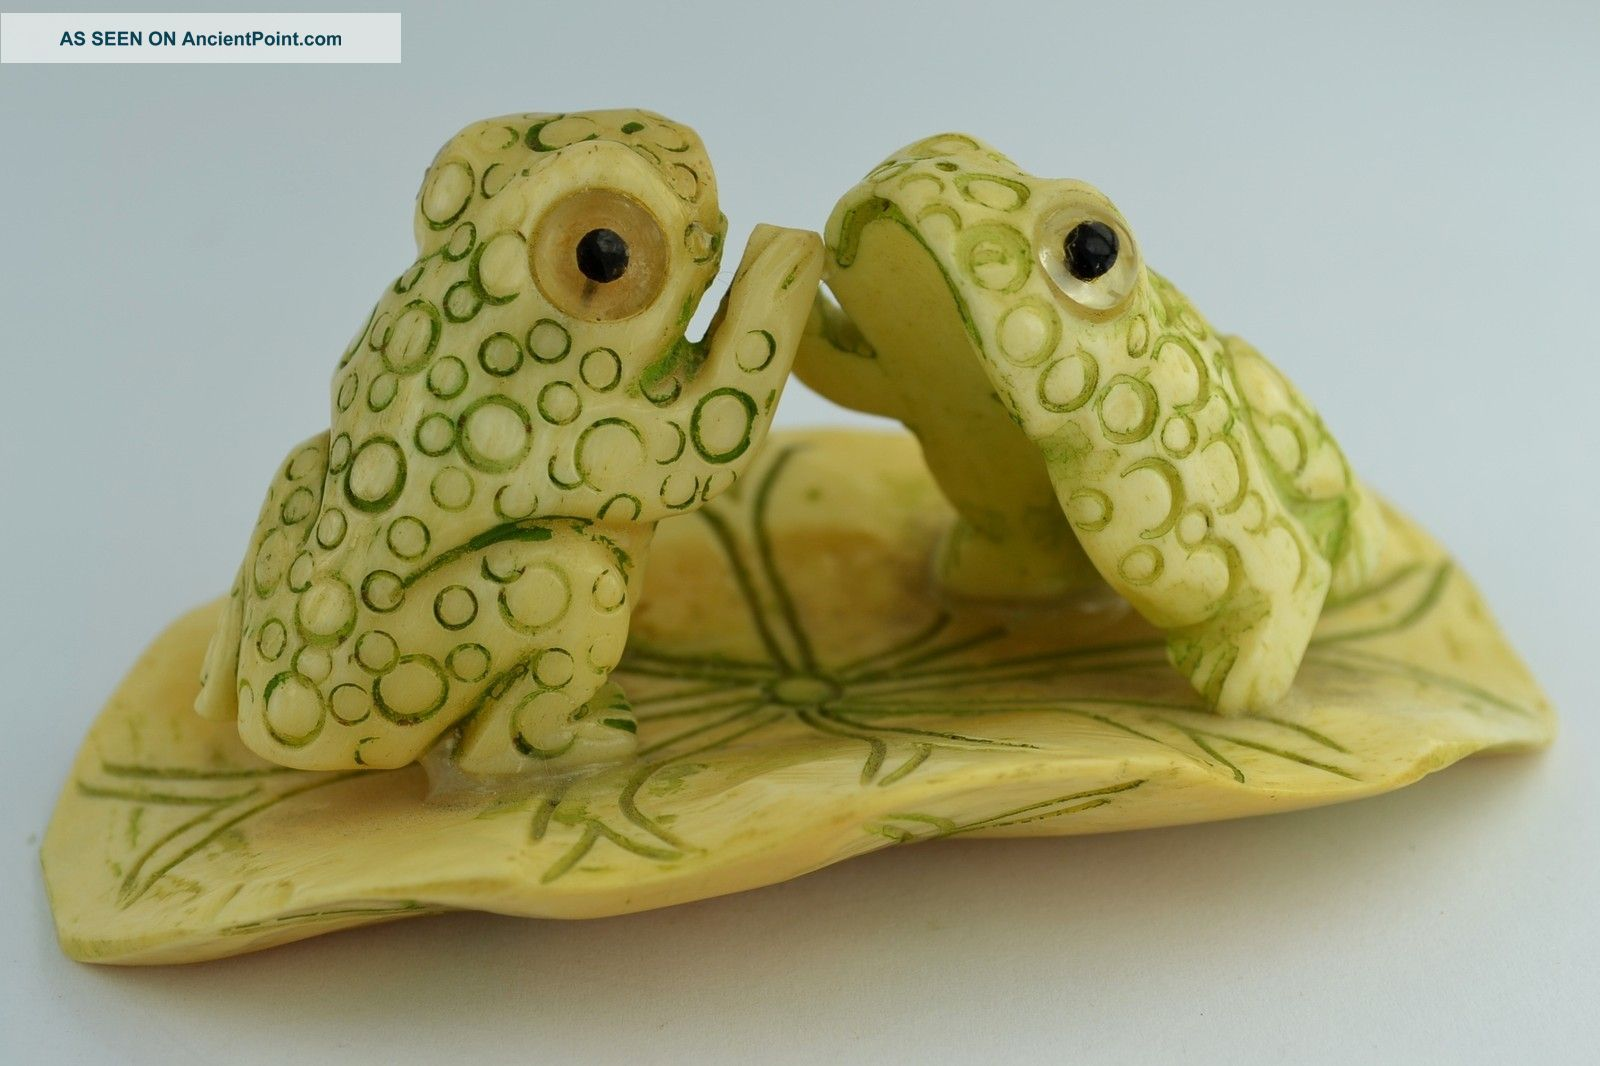 China Collectibles Old Decorated Wonderful Handwork Carving Frog Clap Statue +++ Latin American photo